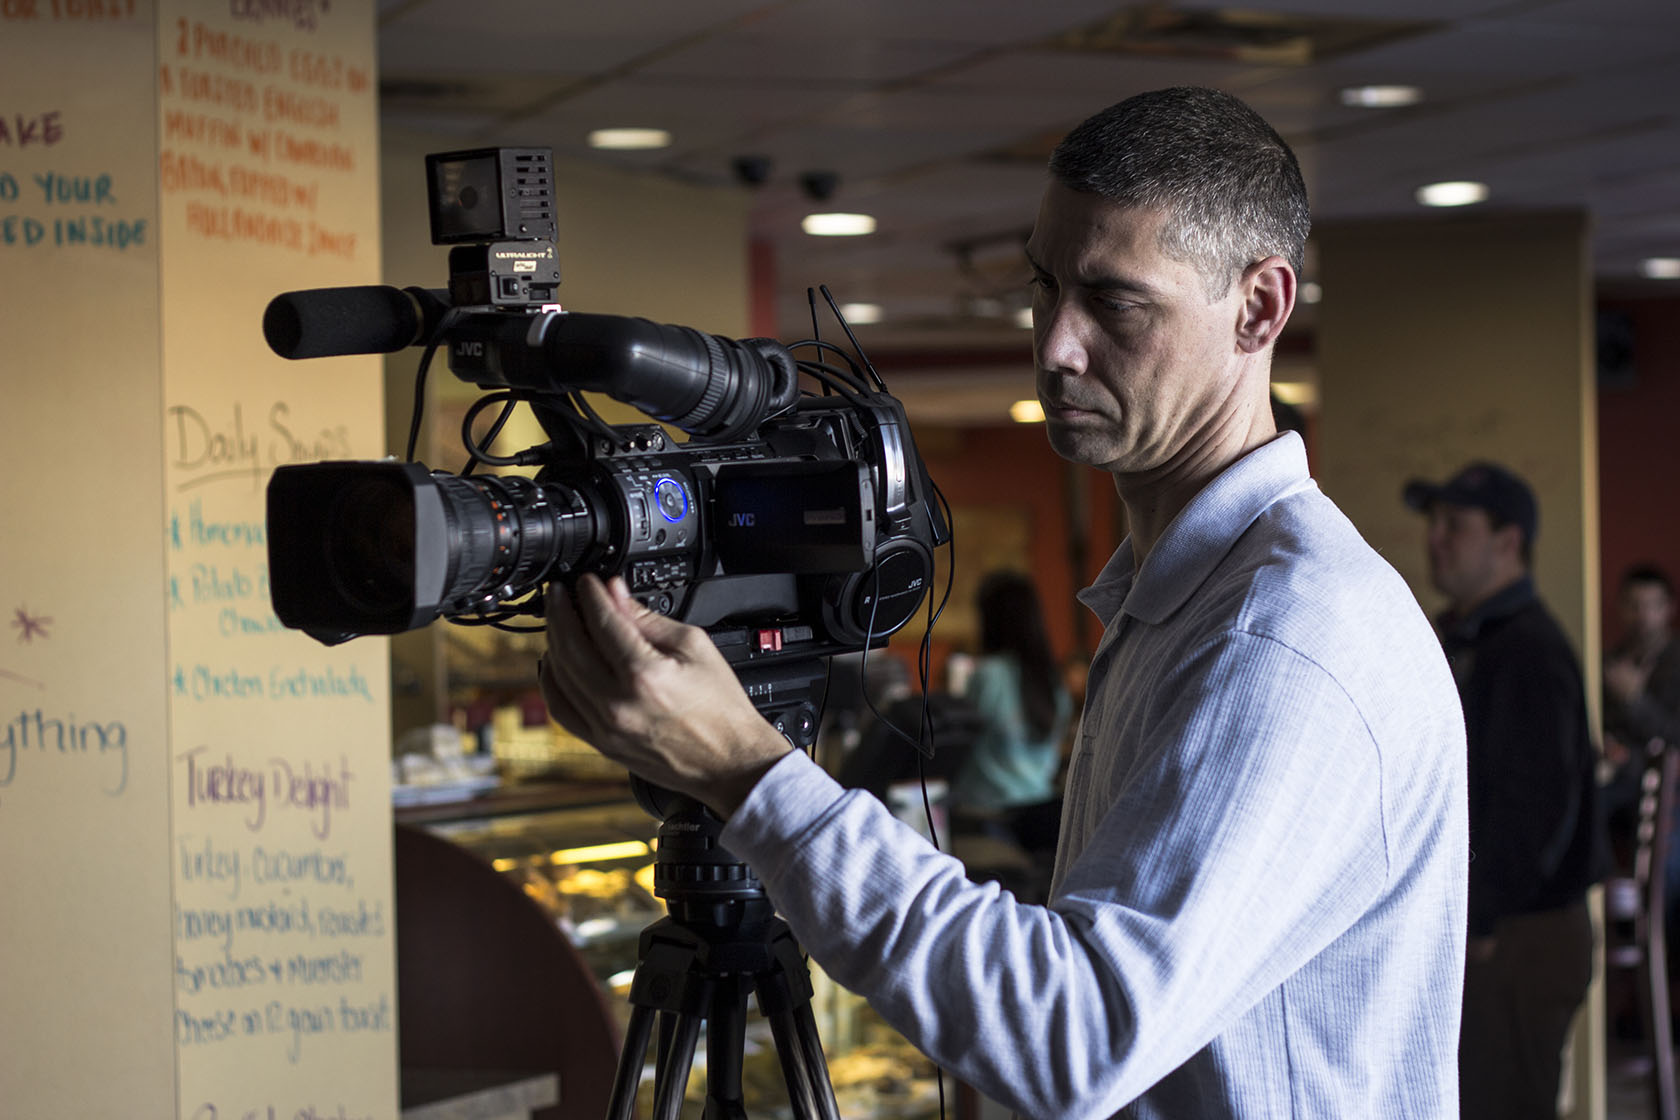 BCS students learn how to produce video documentary features